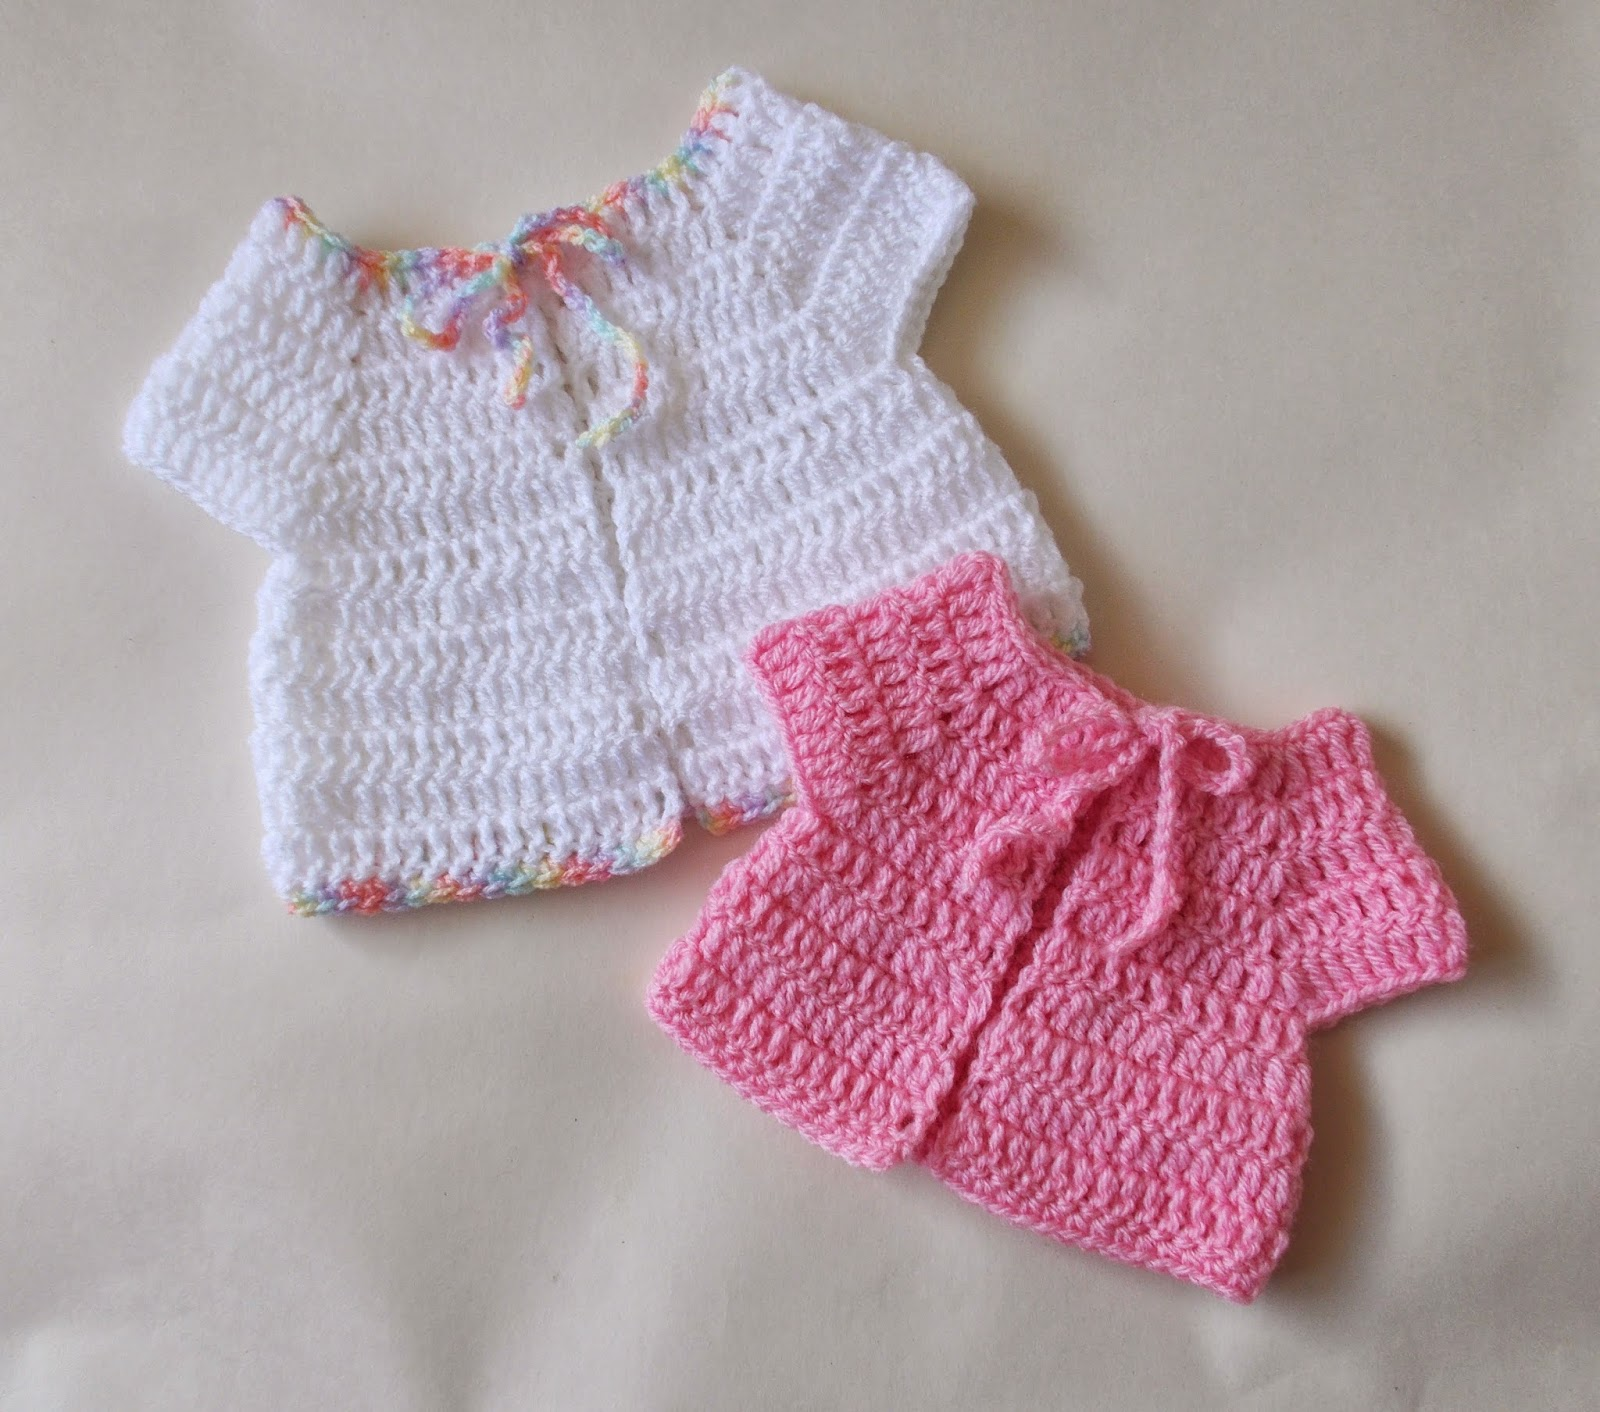 mariannas lazy daisy days: Premature Baby Crochet Baby Jacket